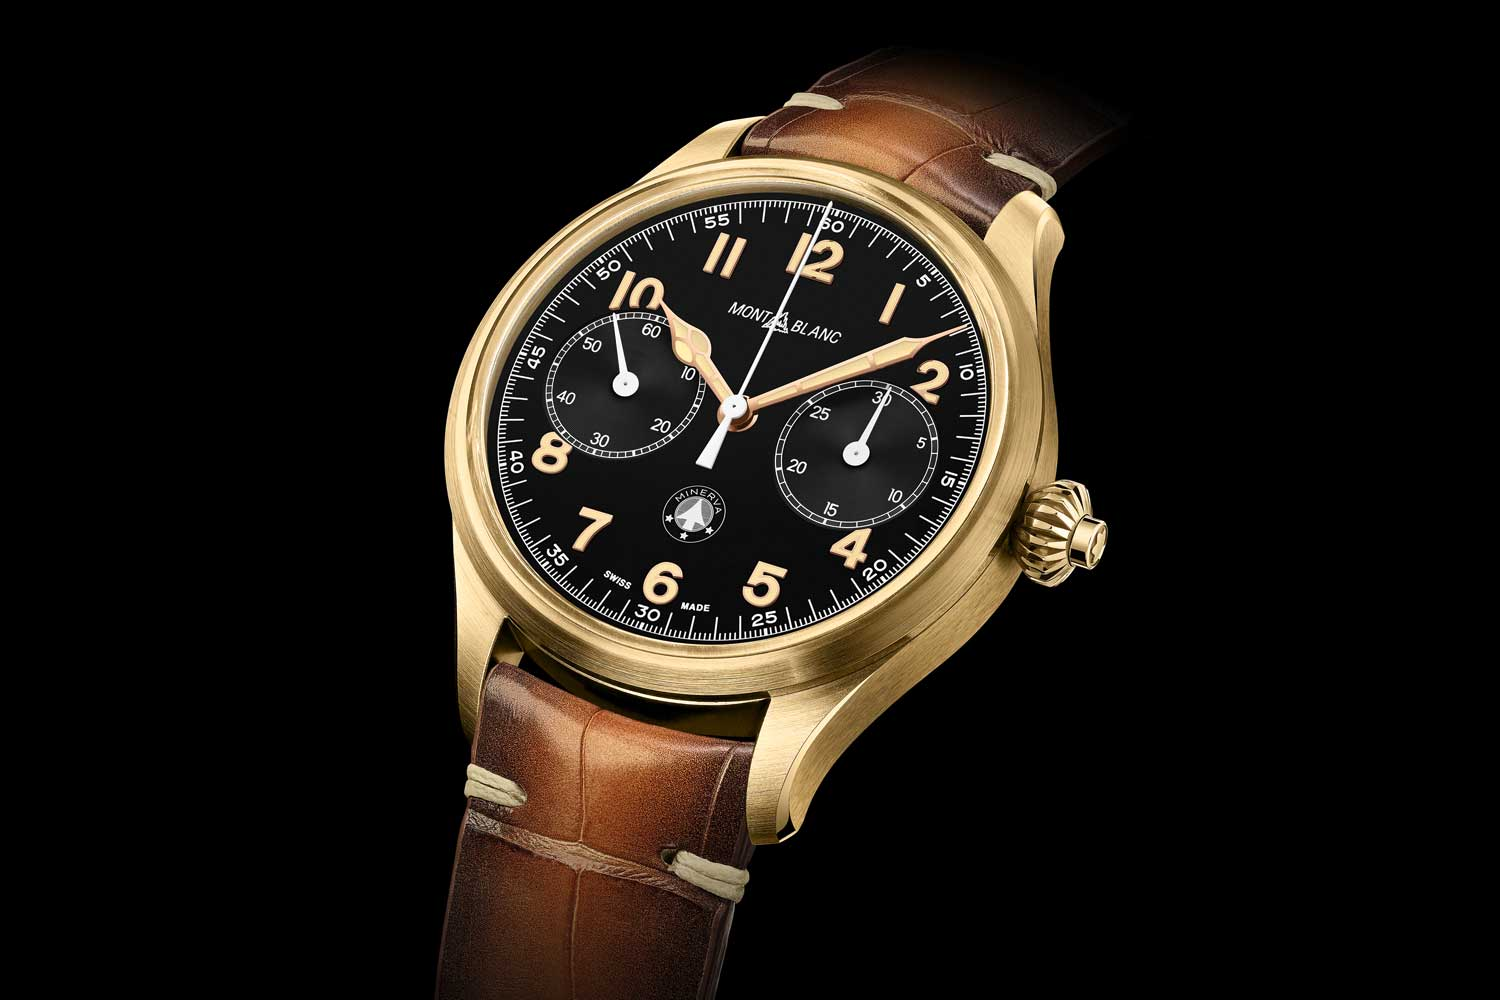 The Montblanc 1858 Monopusher Chronograph Origins Limited Edition 100